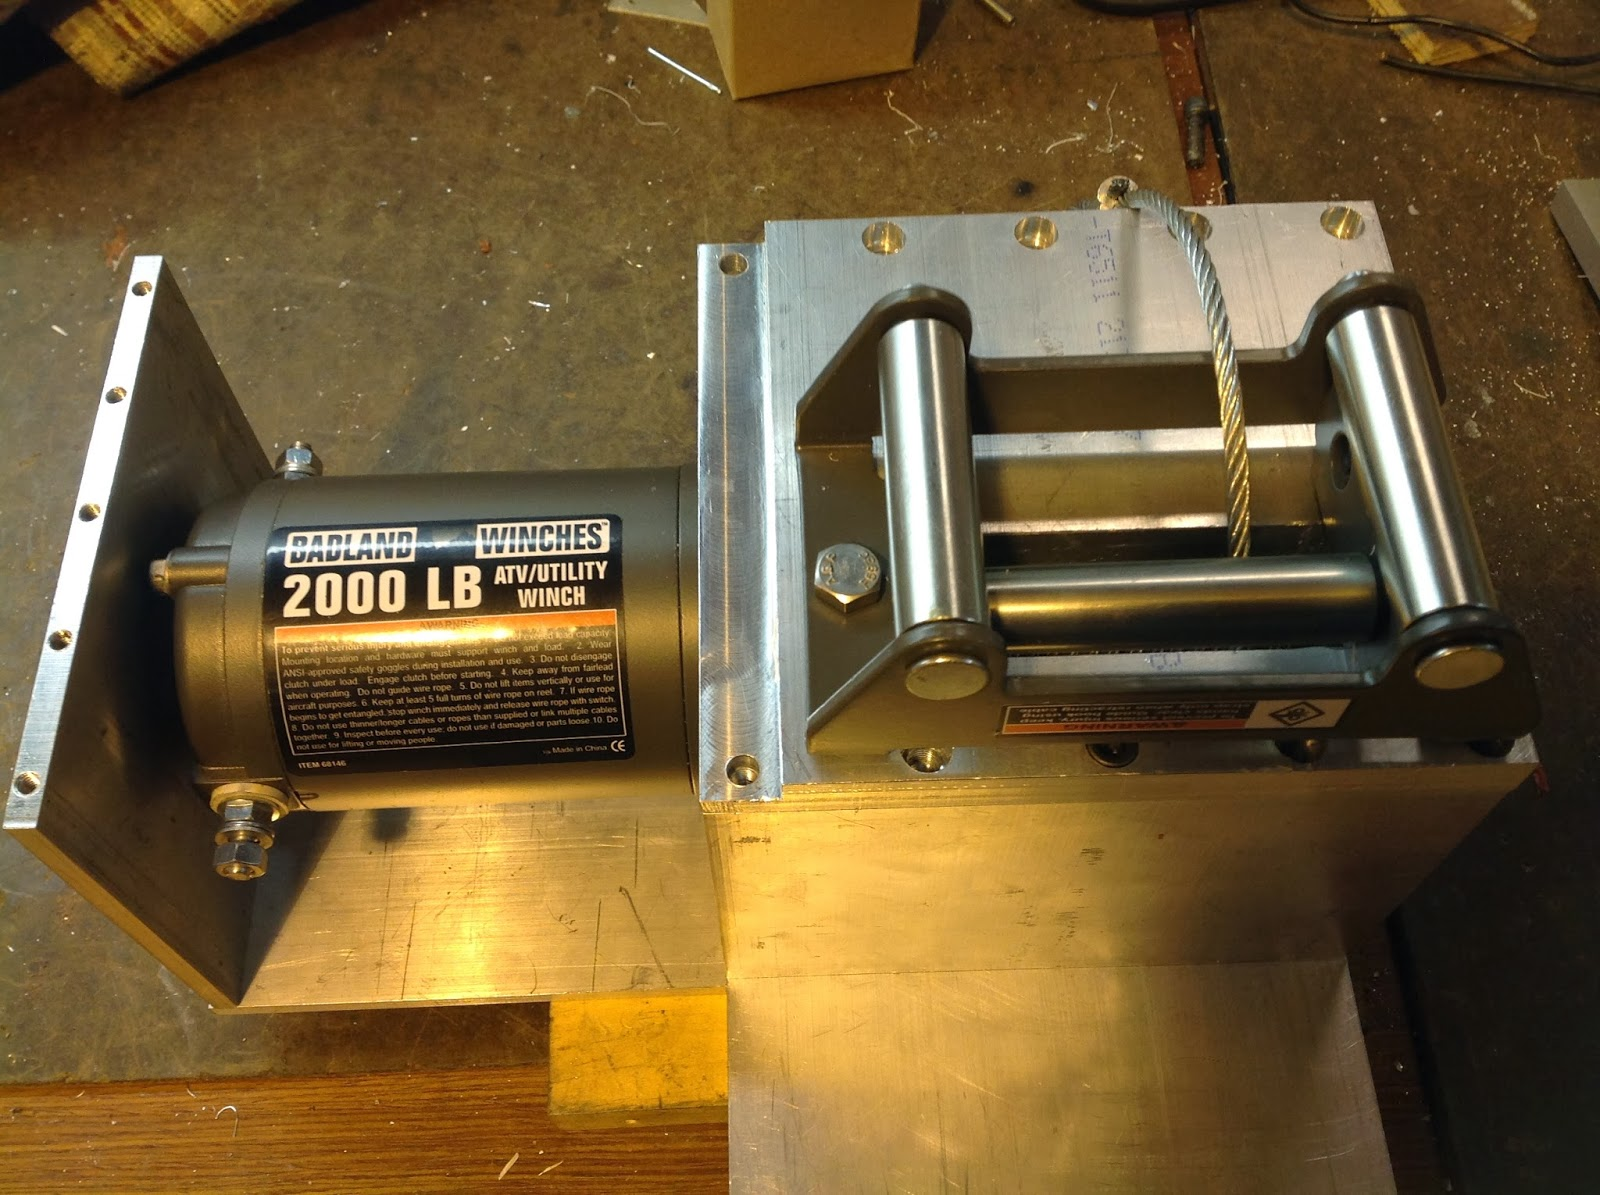 Robert's Projects: Installing a Harbor Freight Winch on my